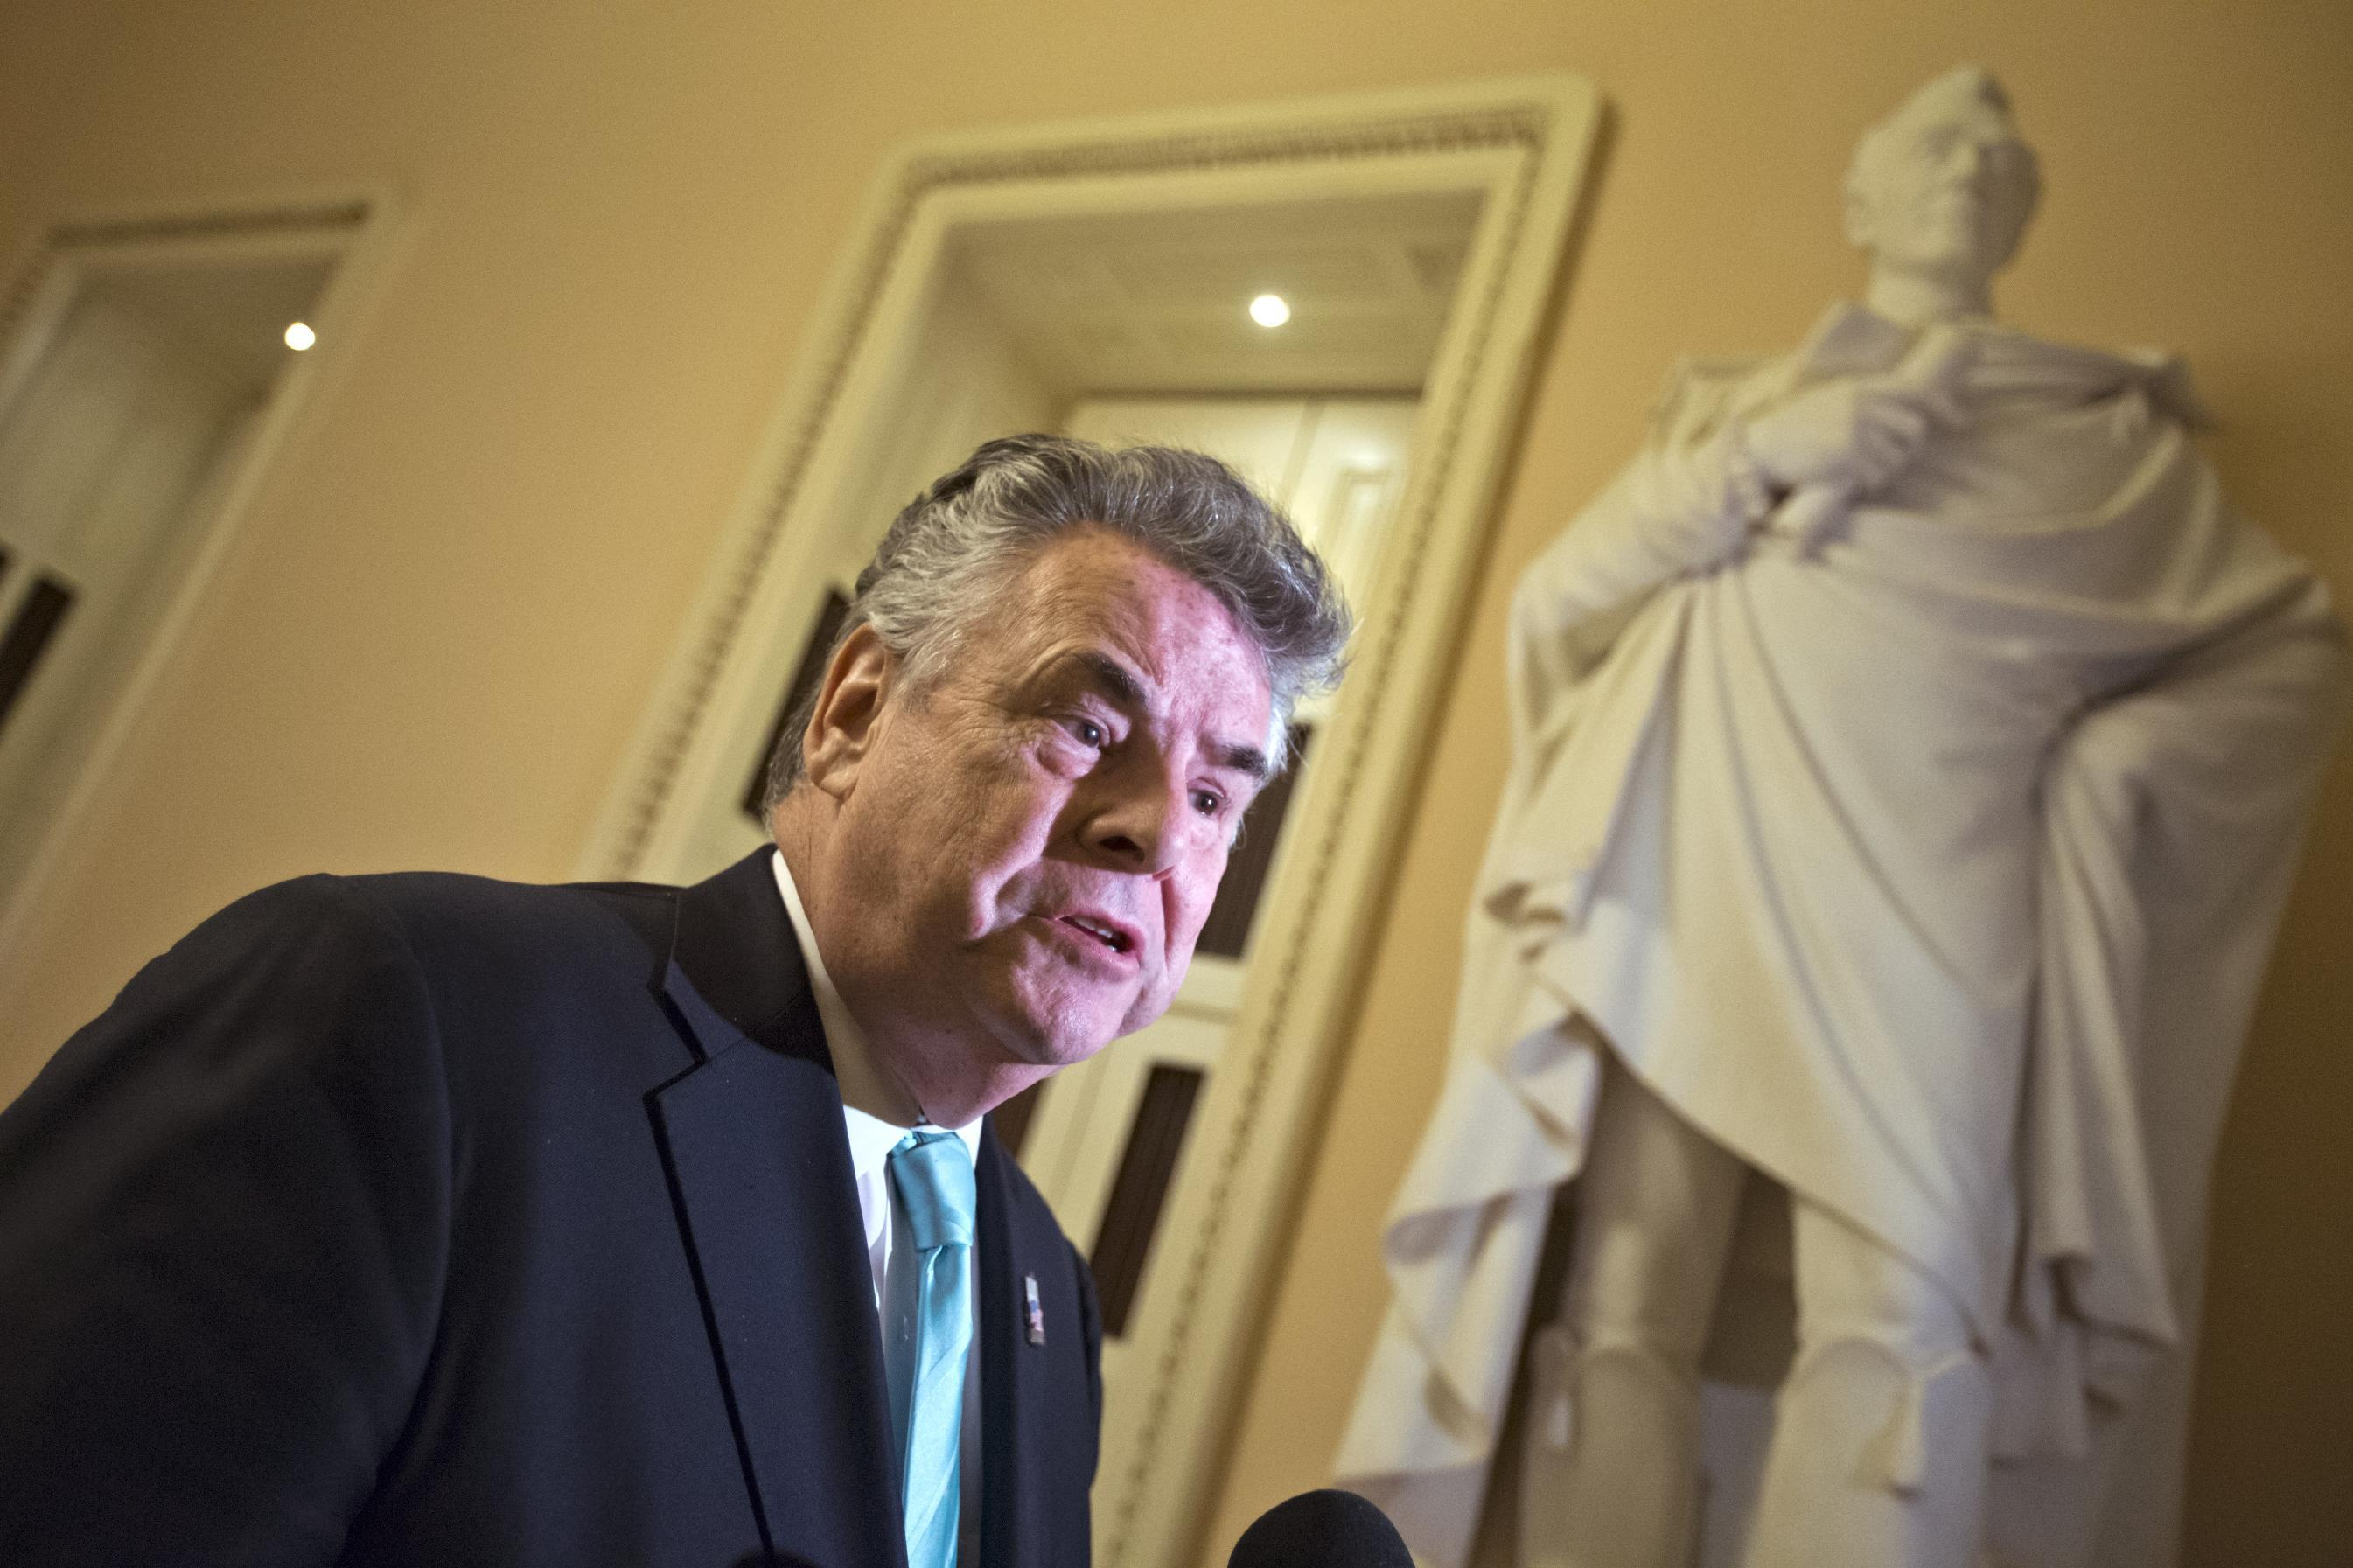 Rep. Peter King, R-N.Y., speaks to reporters after appearing before the House Rules Committee to work on an aid package to assist victims of Superstorm Sandy on Monday, Jan. 14, 2013, at the Capitol in Washington. The House is expected to vote on the bill Tuesday. (AP Photo/J. Scott Applewhite)